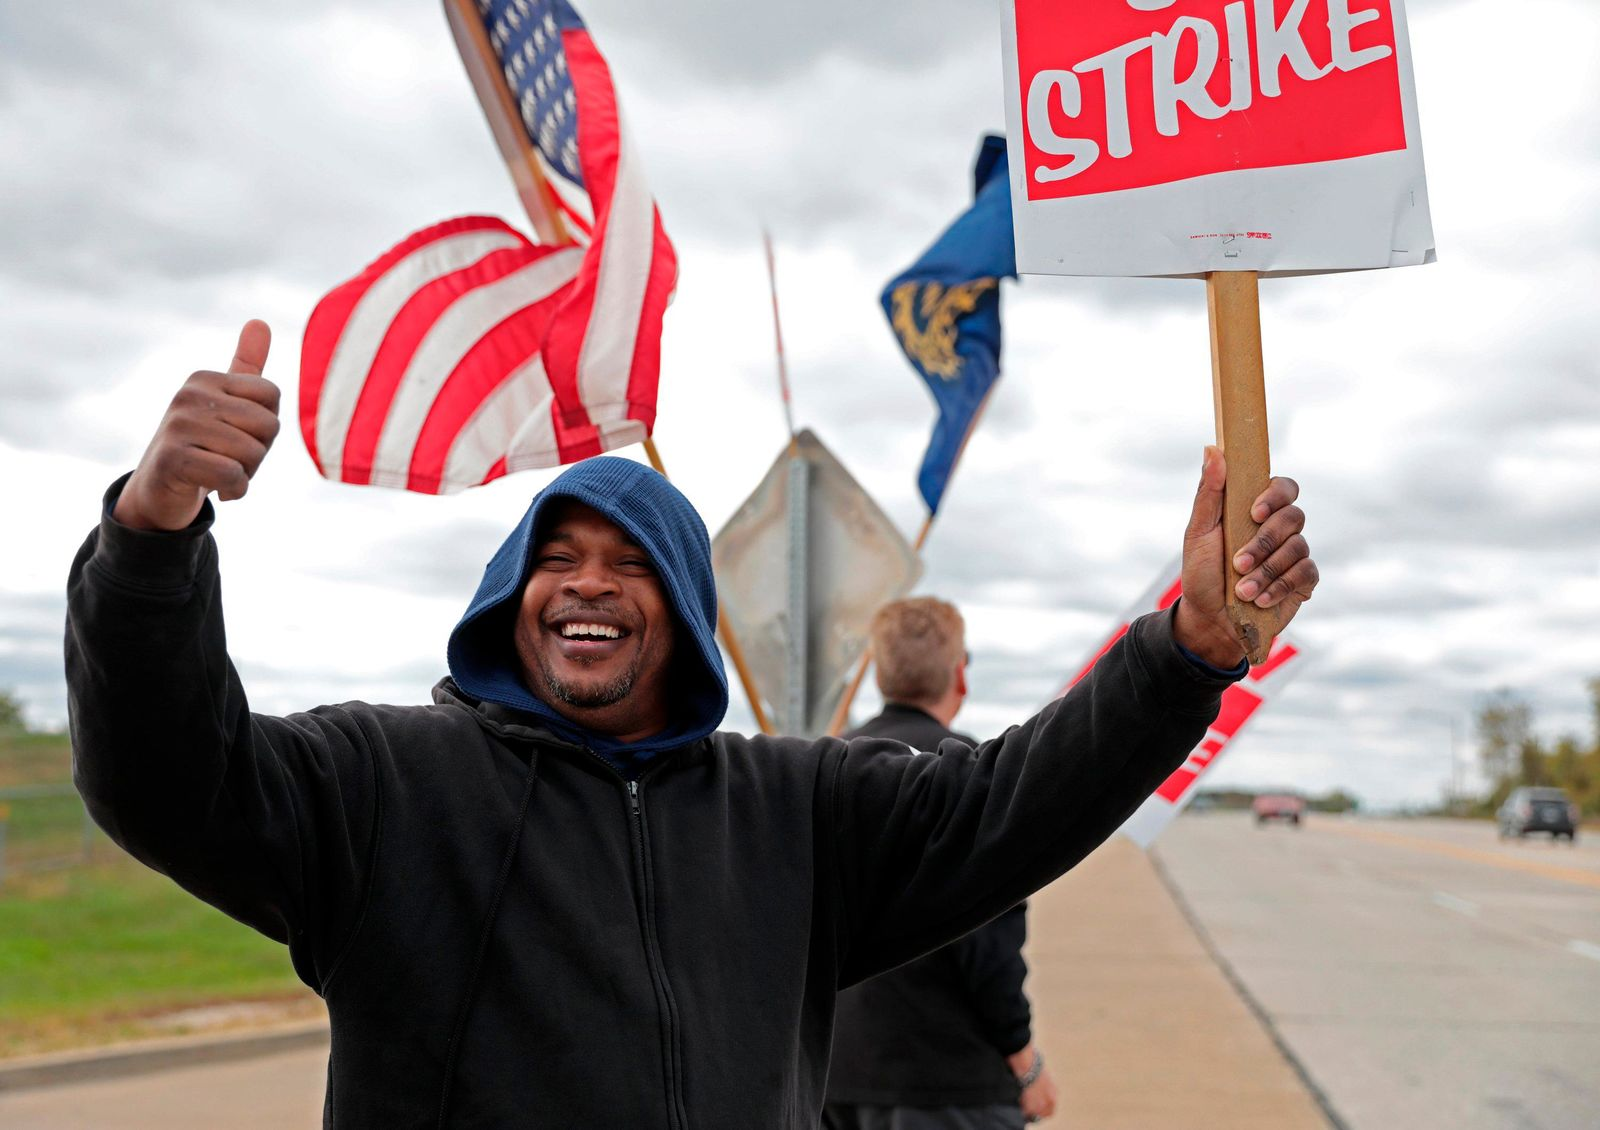 Bill Jackson, of St. Louis, gives a thumbs up to drivers that wave or honk as United Auto Workers outside the GM{ }Wentzville Assembly Center in Wentzville, Mo.,  Wednesday, Oct. 16, 2019. UAW workers have been on strike since Sept. 16, but have reached a tentative deal with GM today. Workers expressed cautious optimism, but will likely remain on the picket line until an official deal has been reached. (Cristina M. Fletes/St. Louis Post-Dispatch via AP)